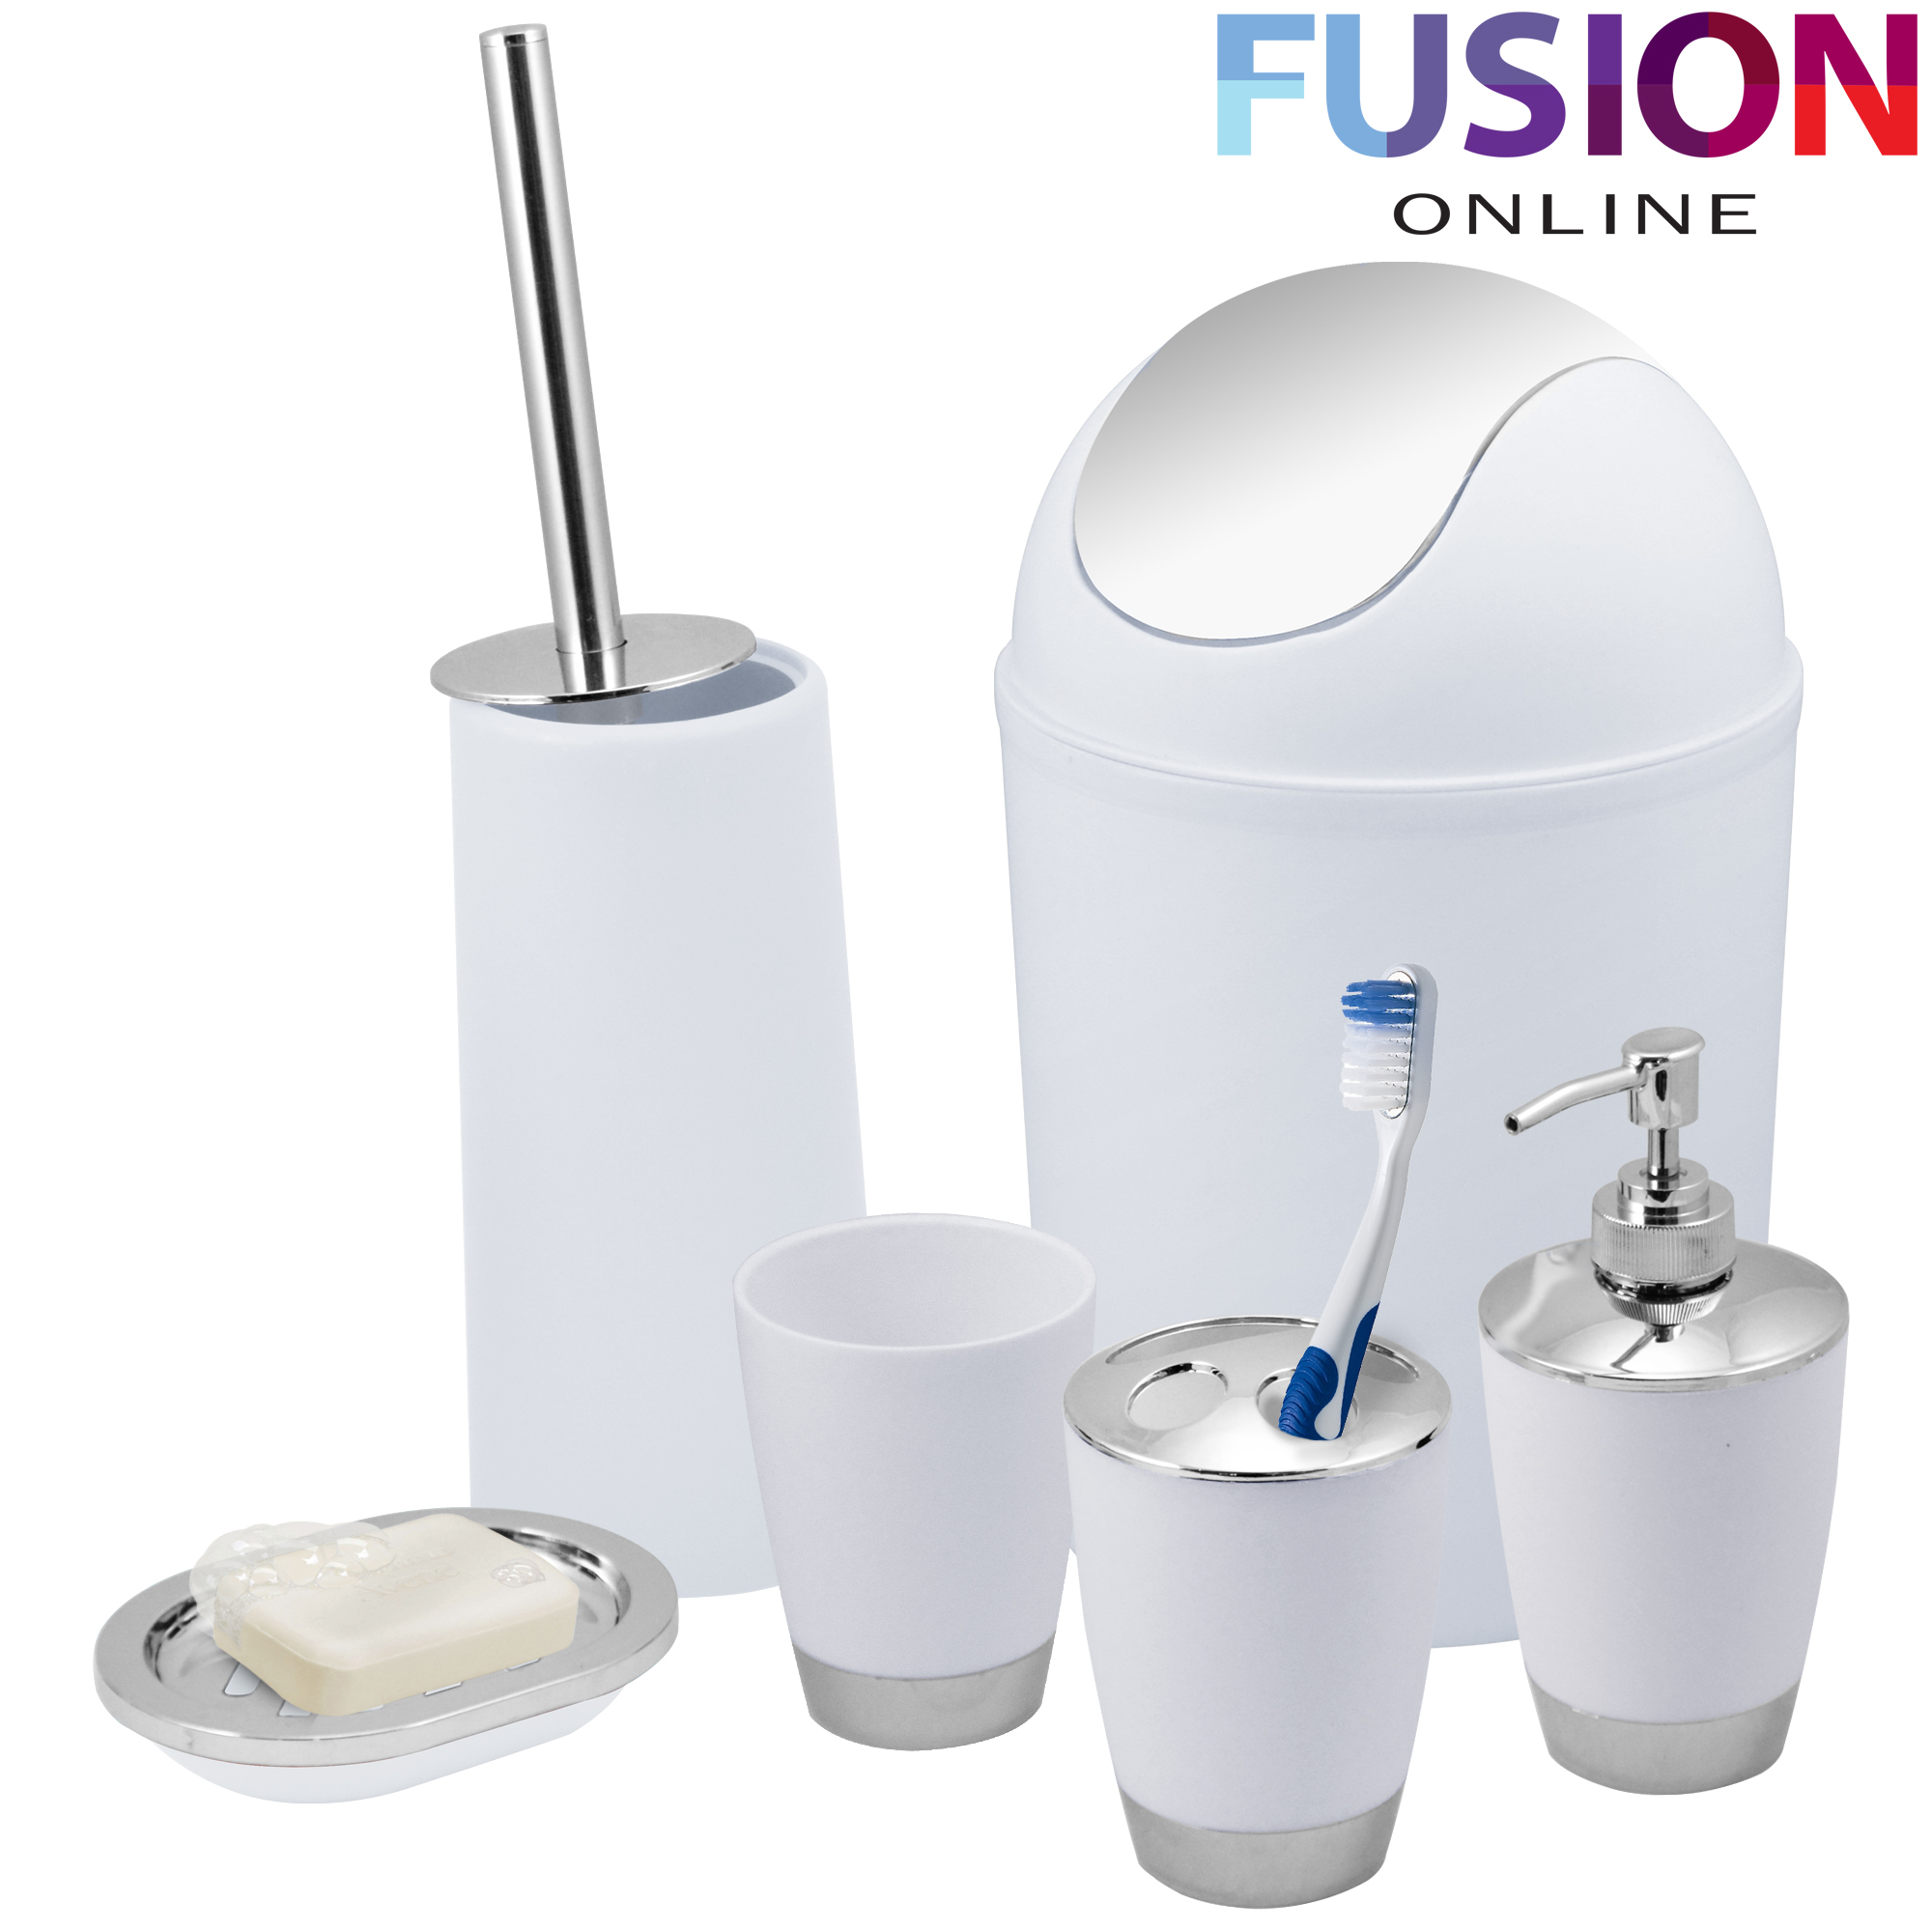 Bathroom set 6 piece accessory bin soap dish dispenser tumbler toothbrush holder ebay - Bathroom soap dish sets ...